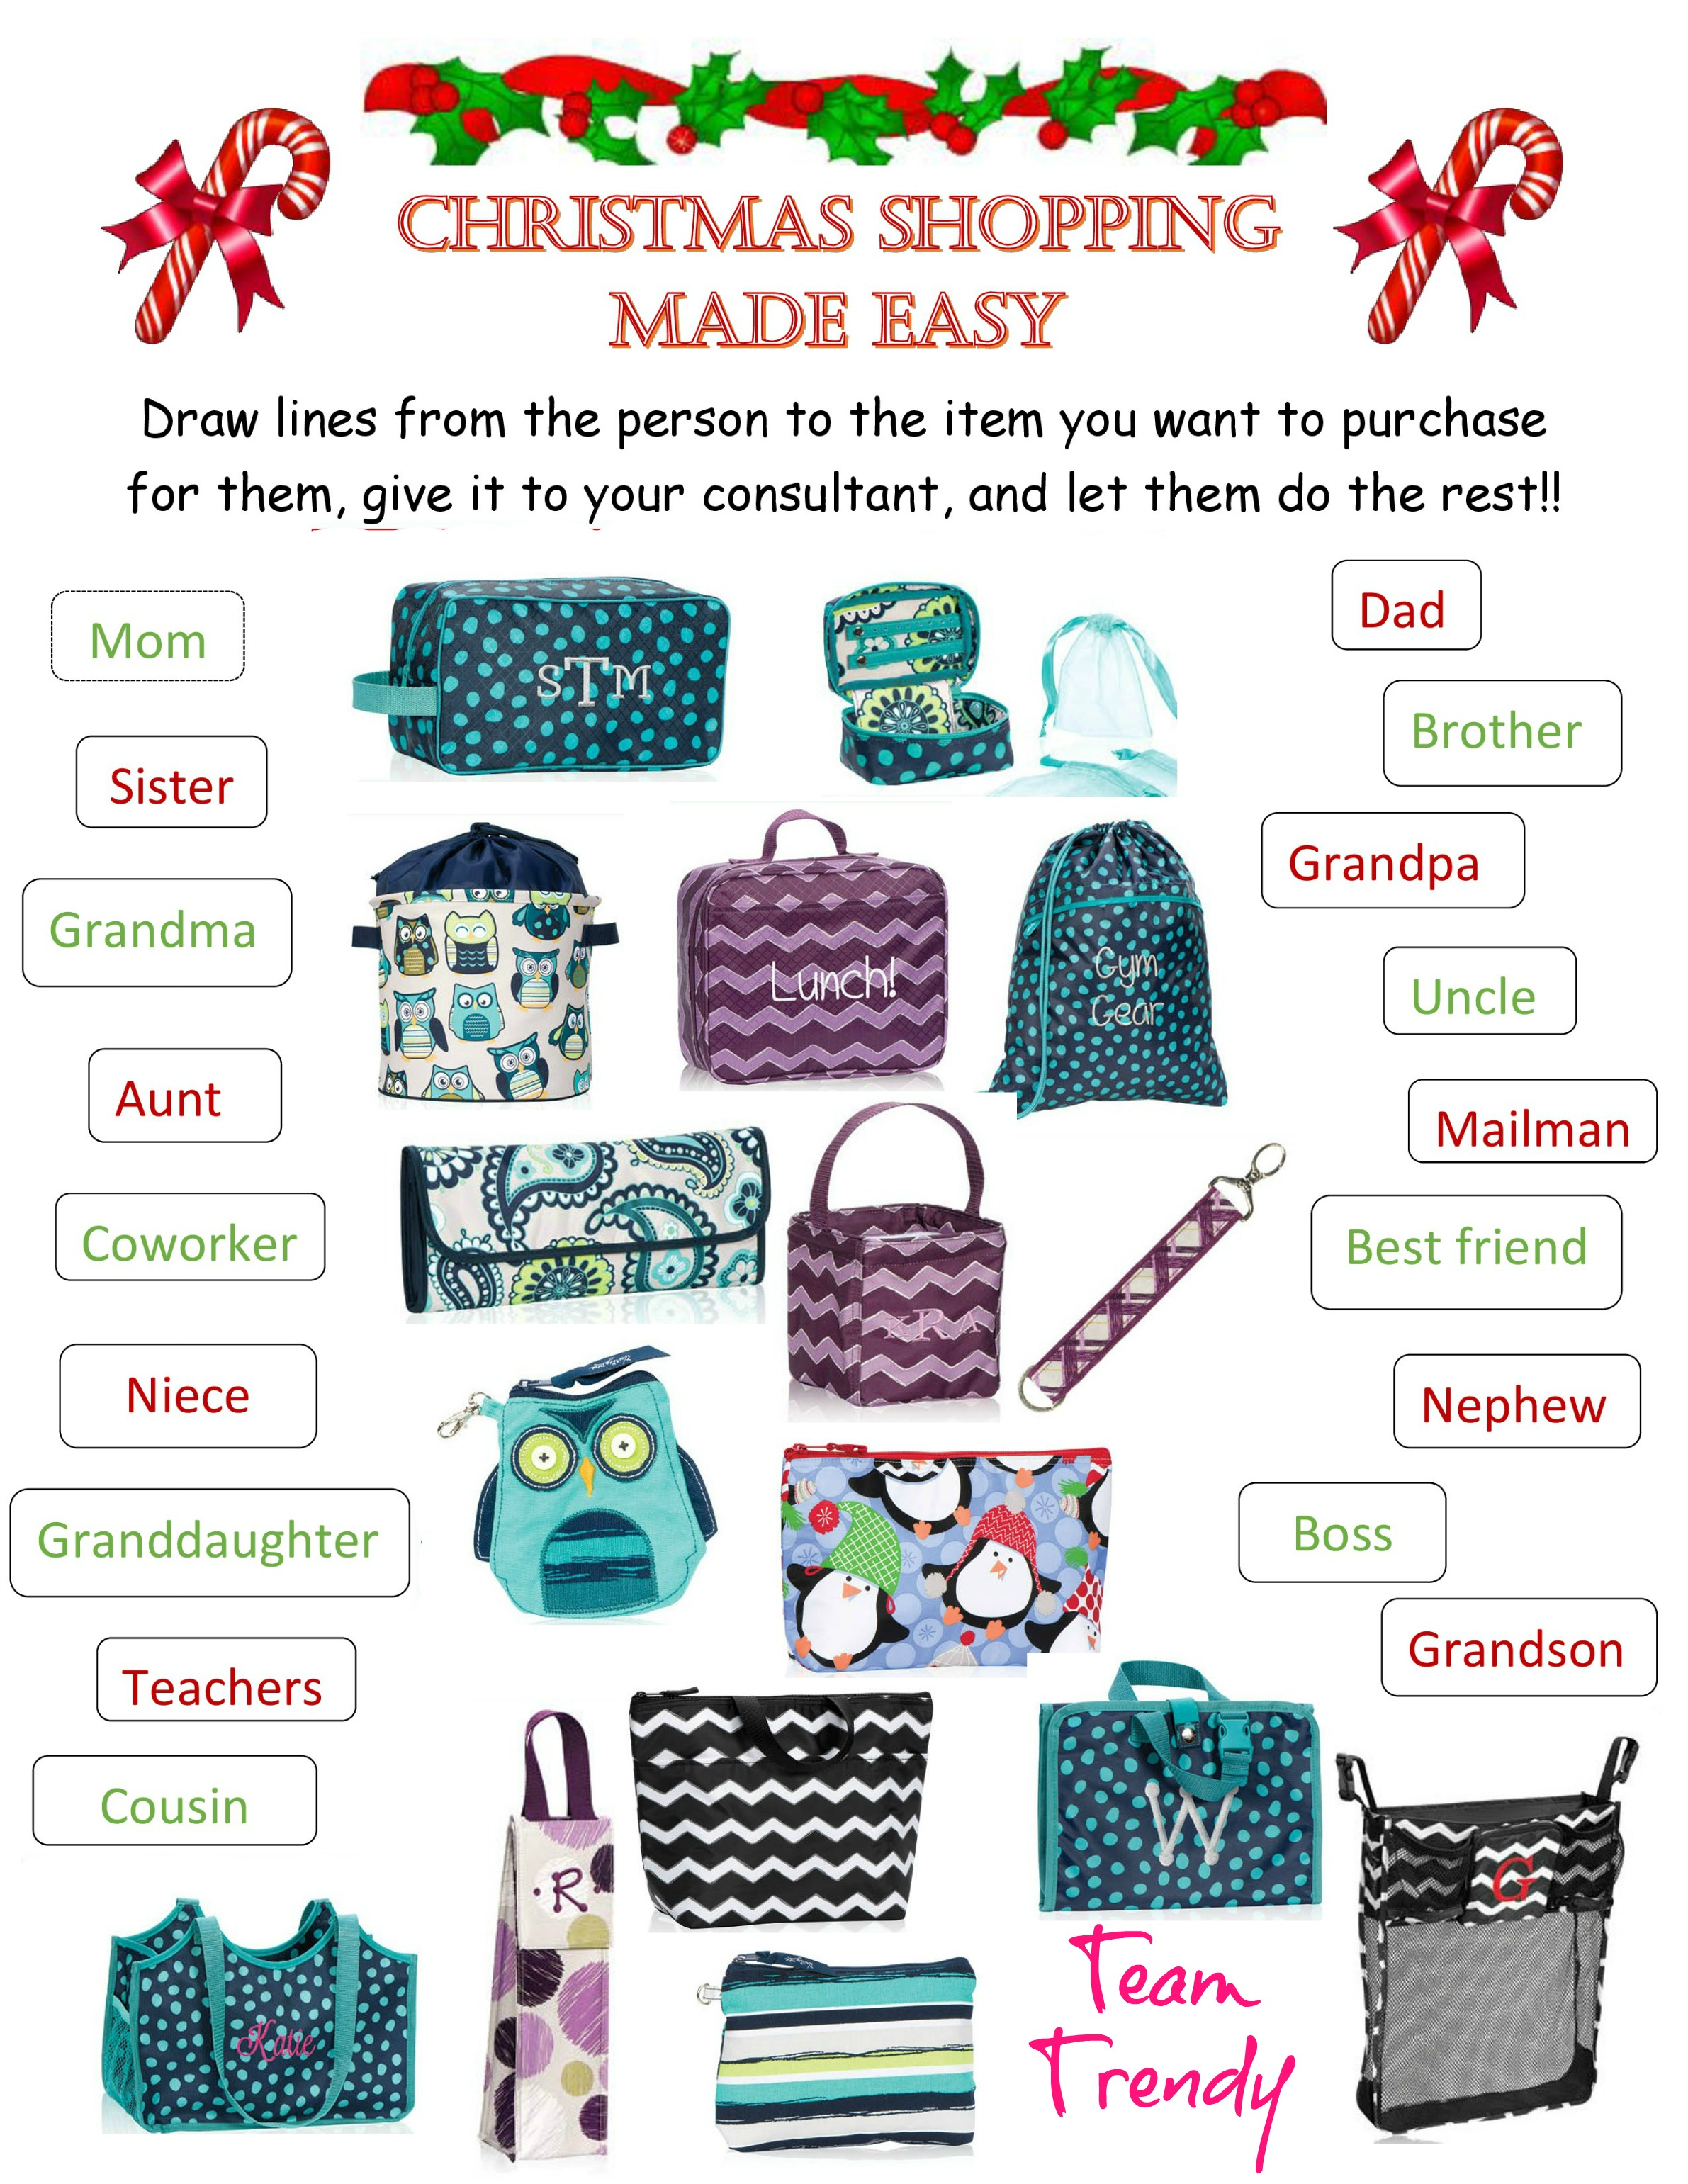 Thirty one november customer special 2014 - Who To Buy For Page 0 2